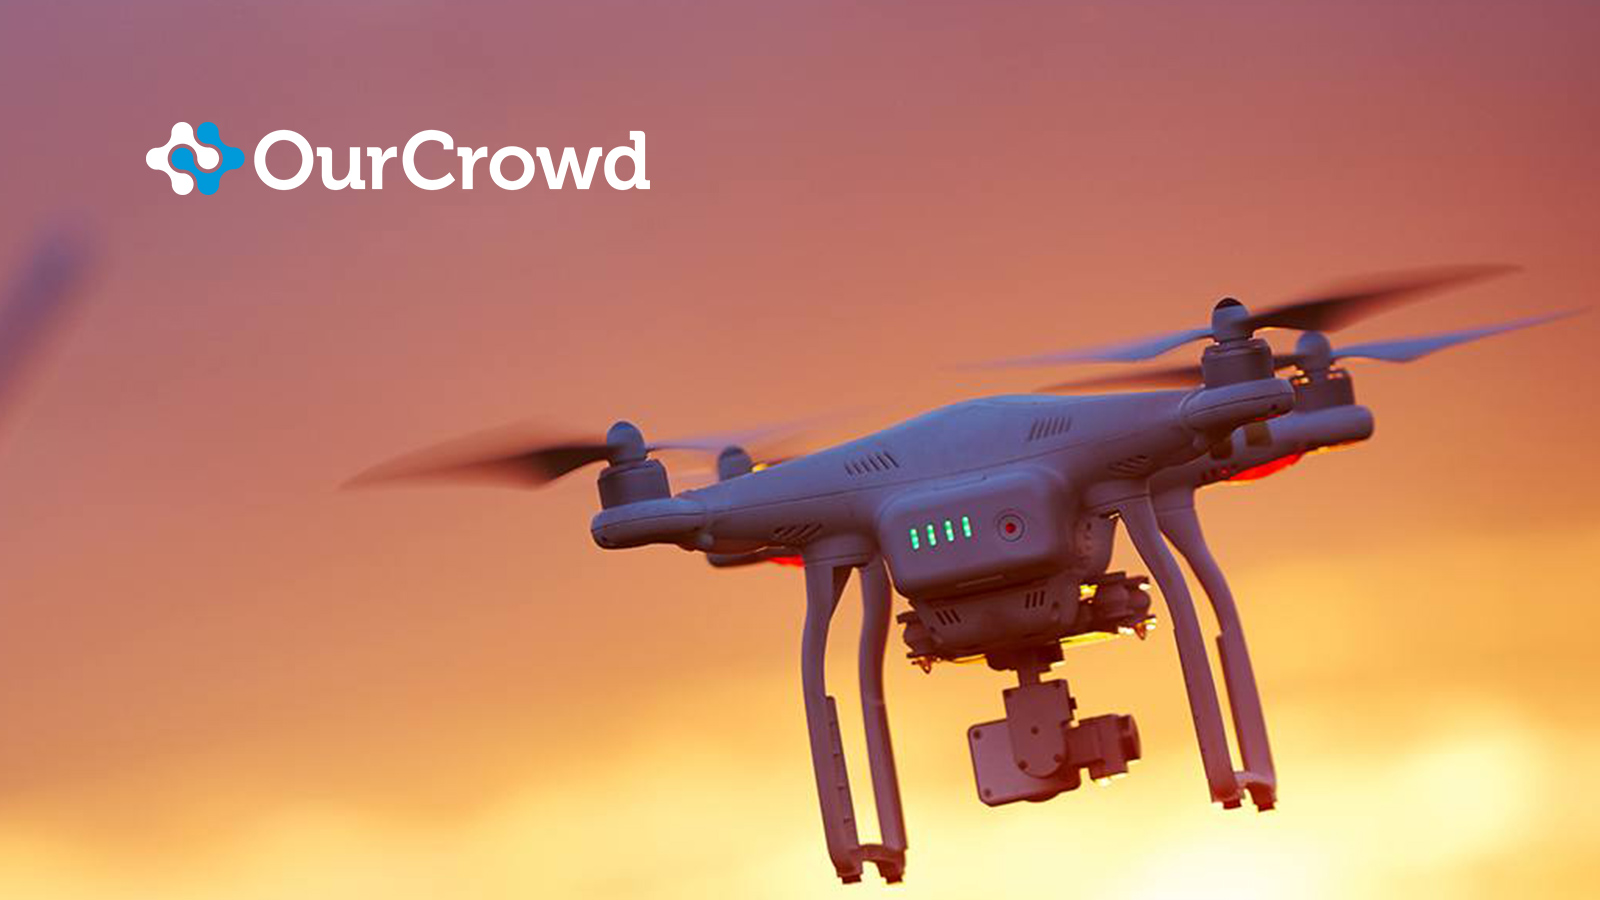 Drones, AI and Next-Generation Mobility Take Center Stage at